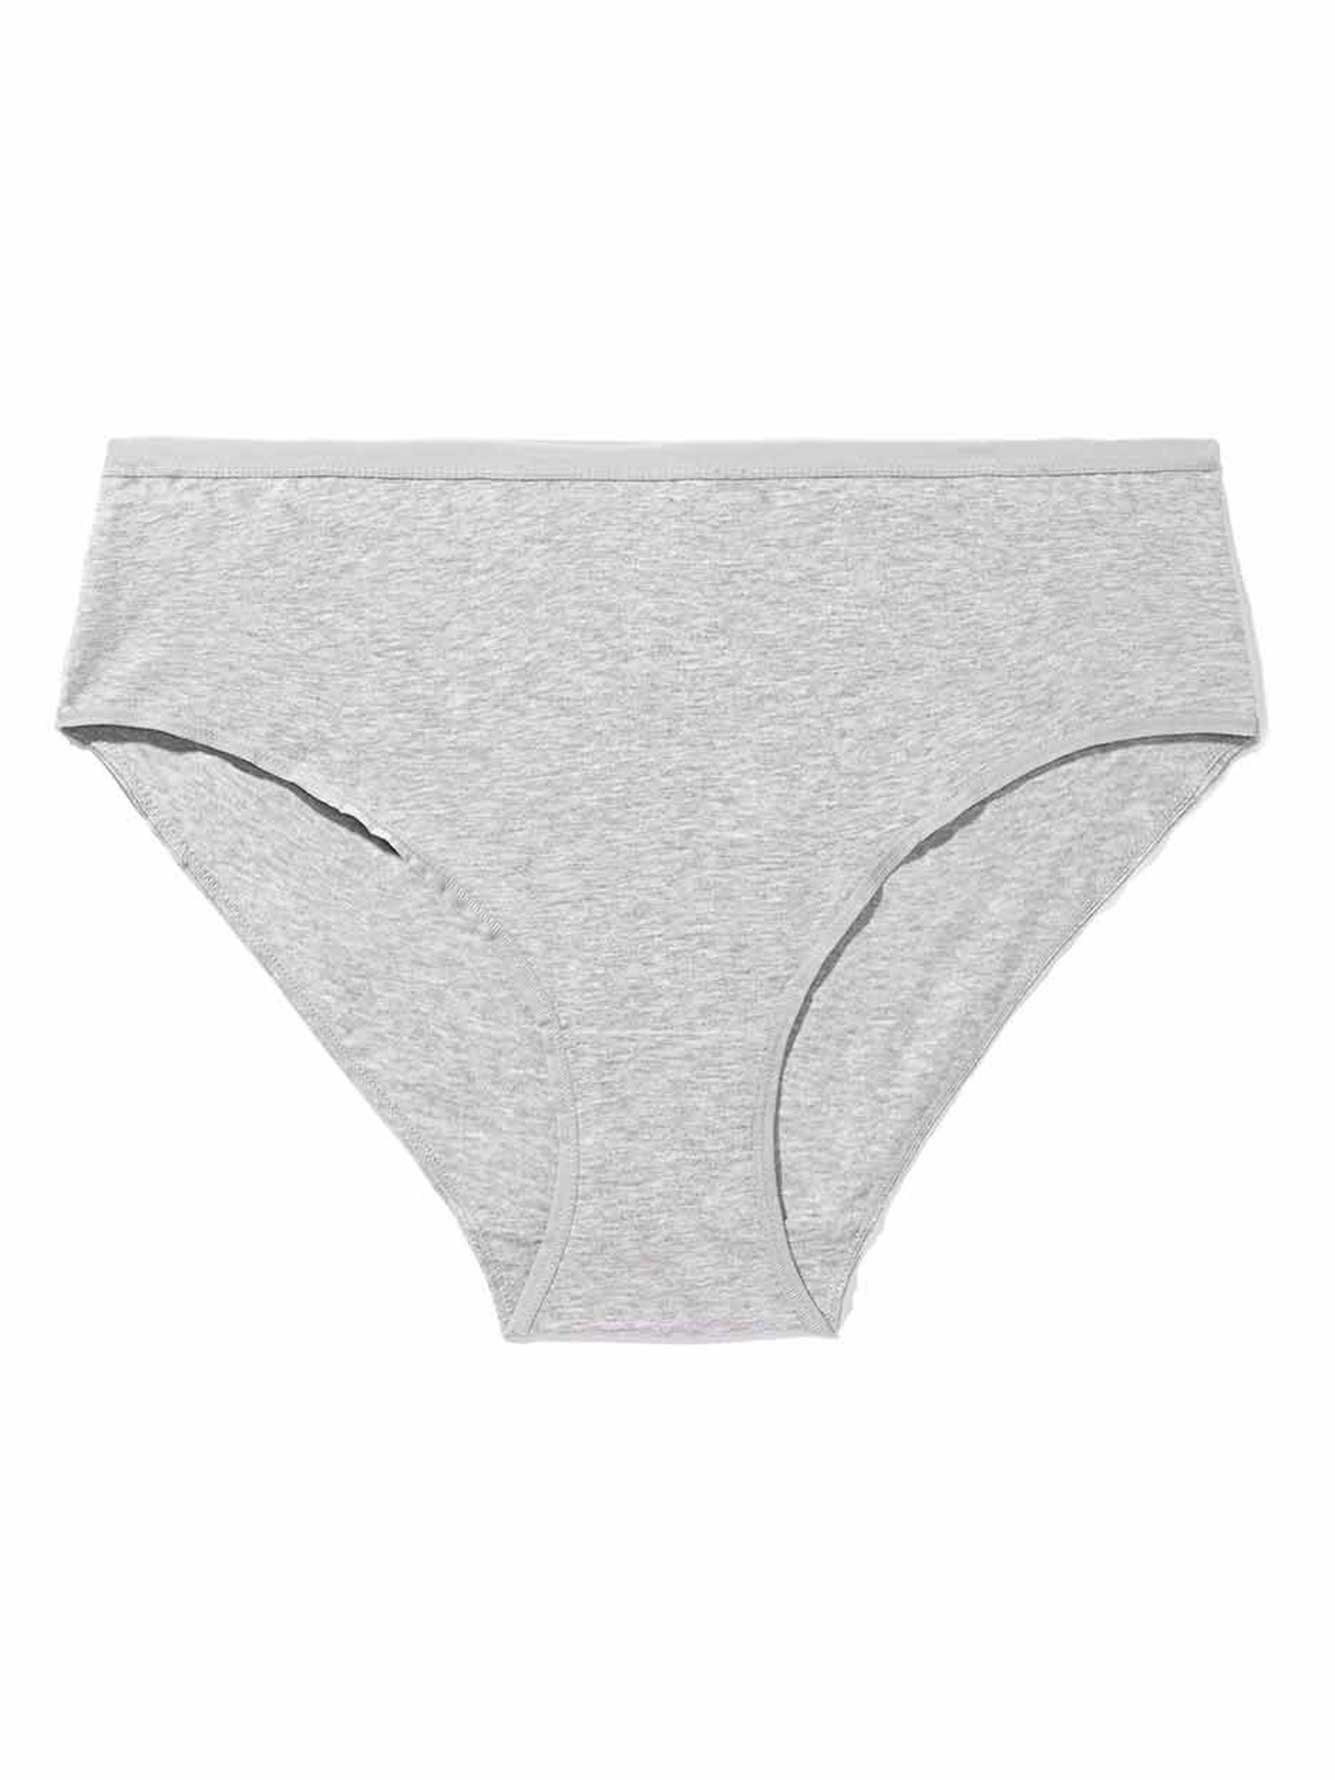 34f073f2b58 Heathered Full Brief Panty - Déesse Collection